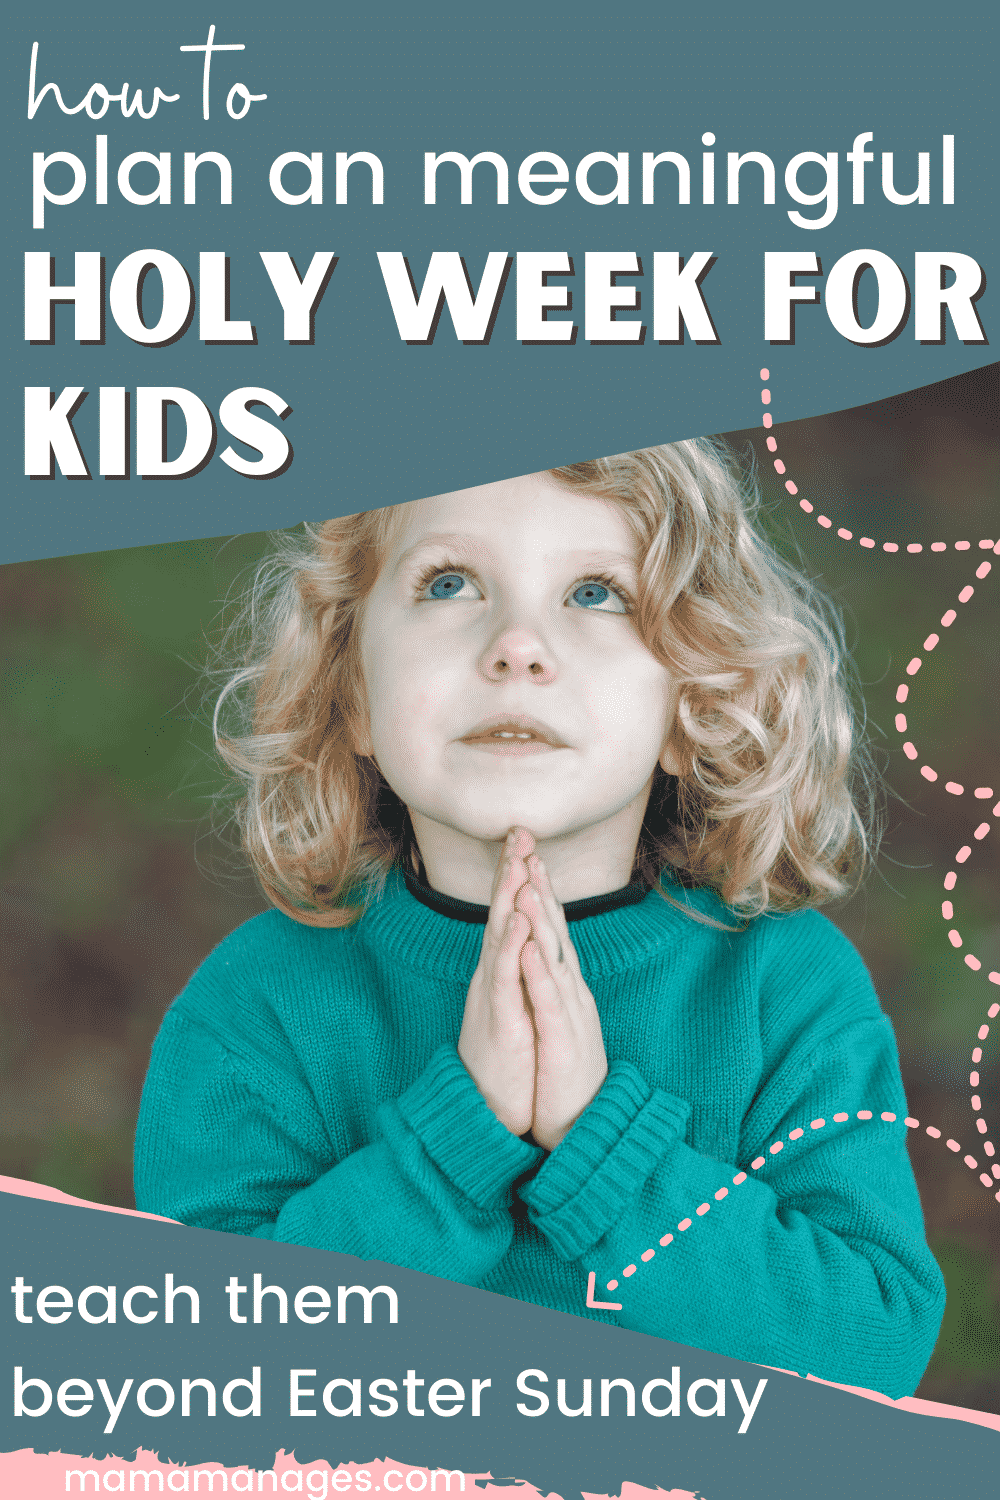 Holy Week for Kids Pin - Child Praying in a Teal Sweater